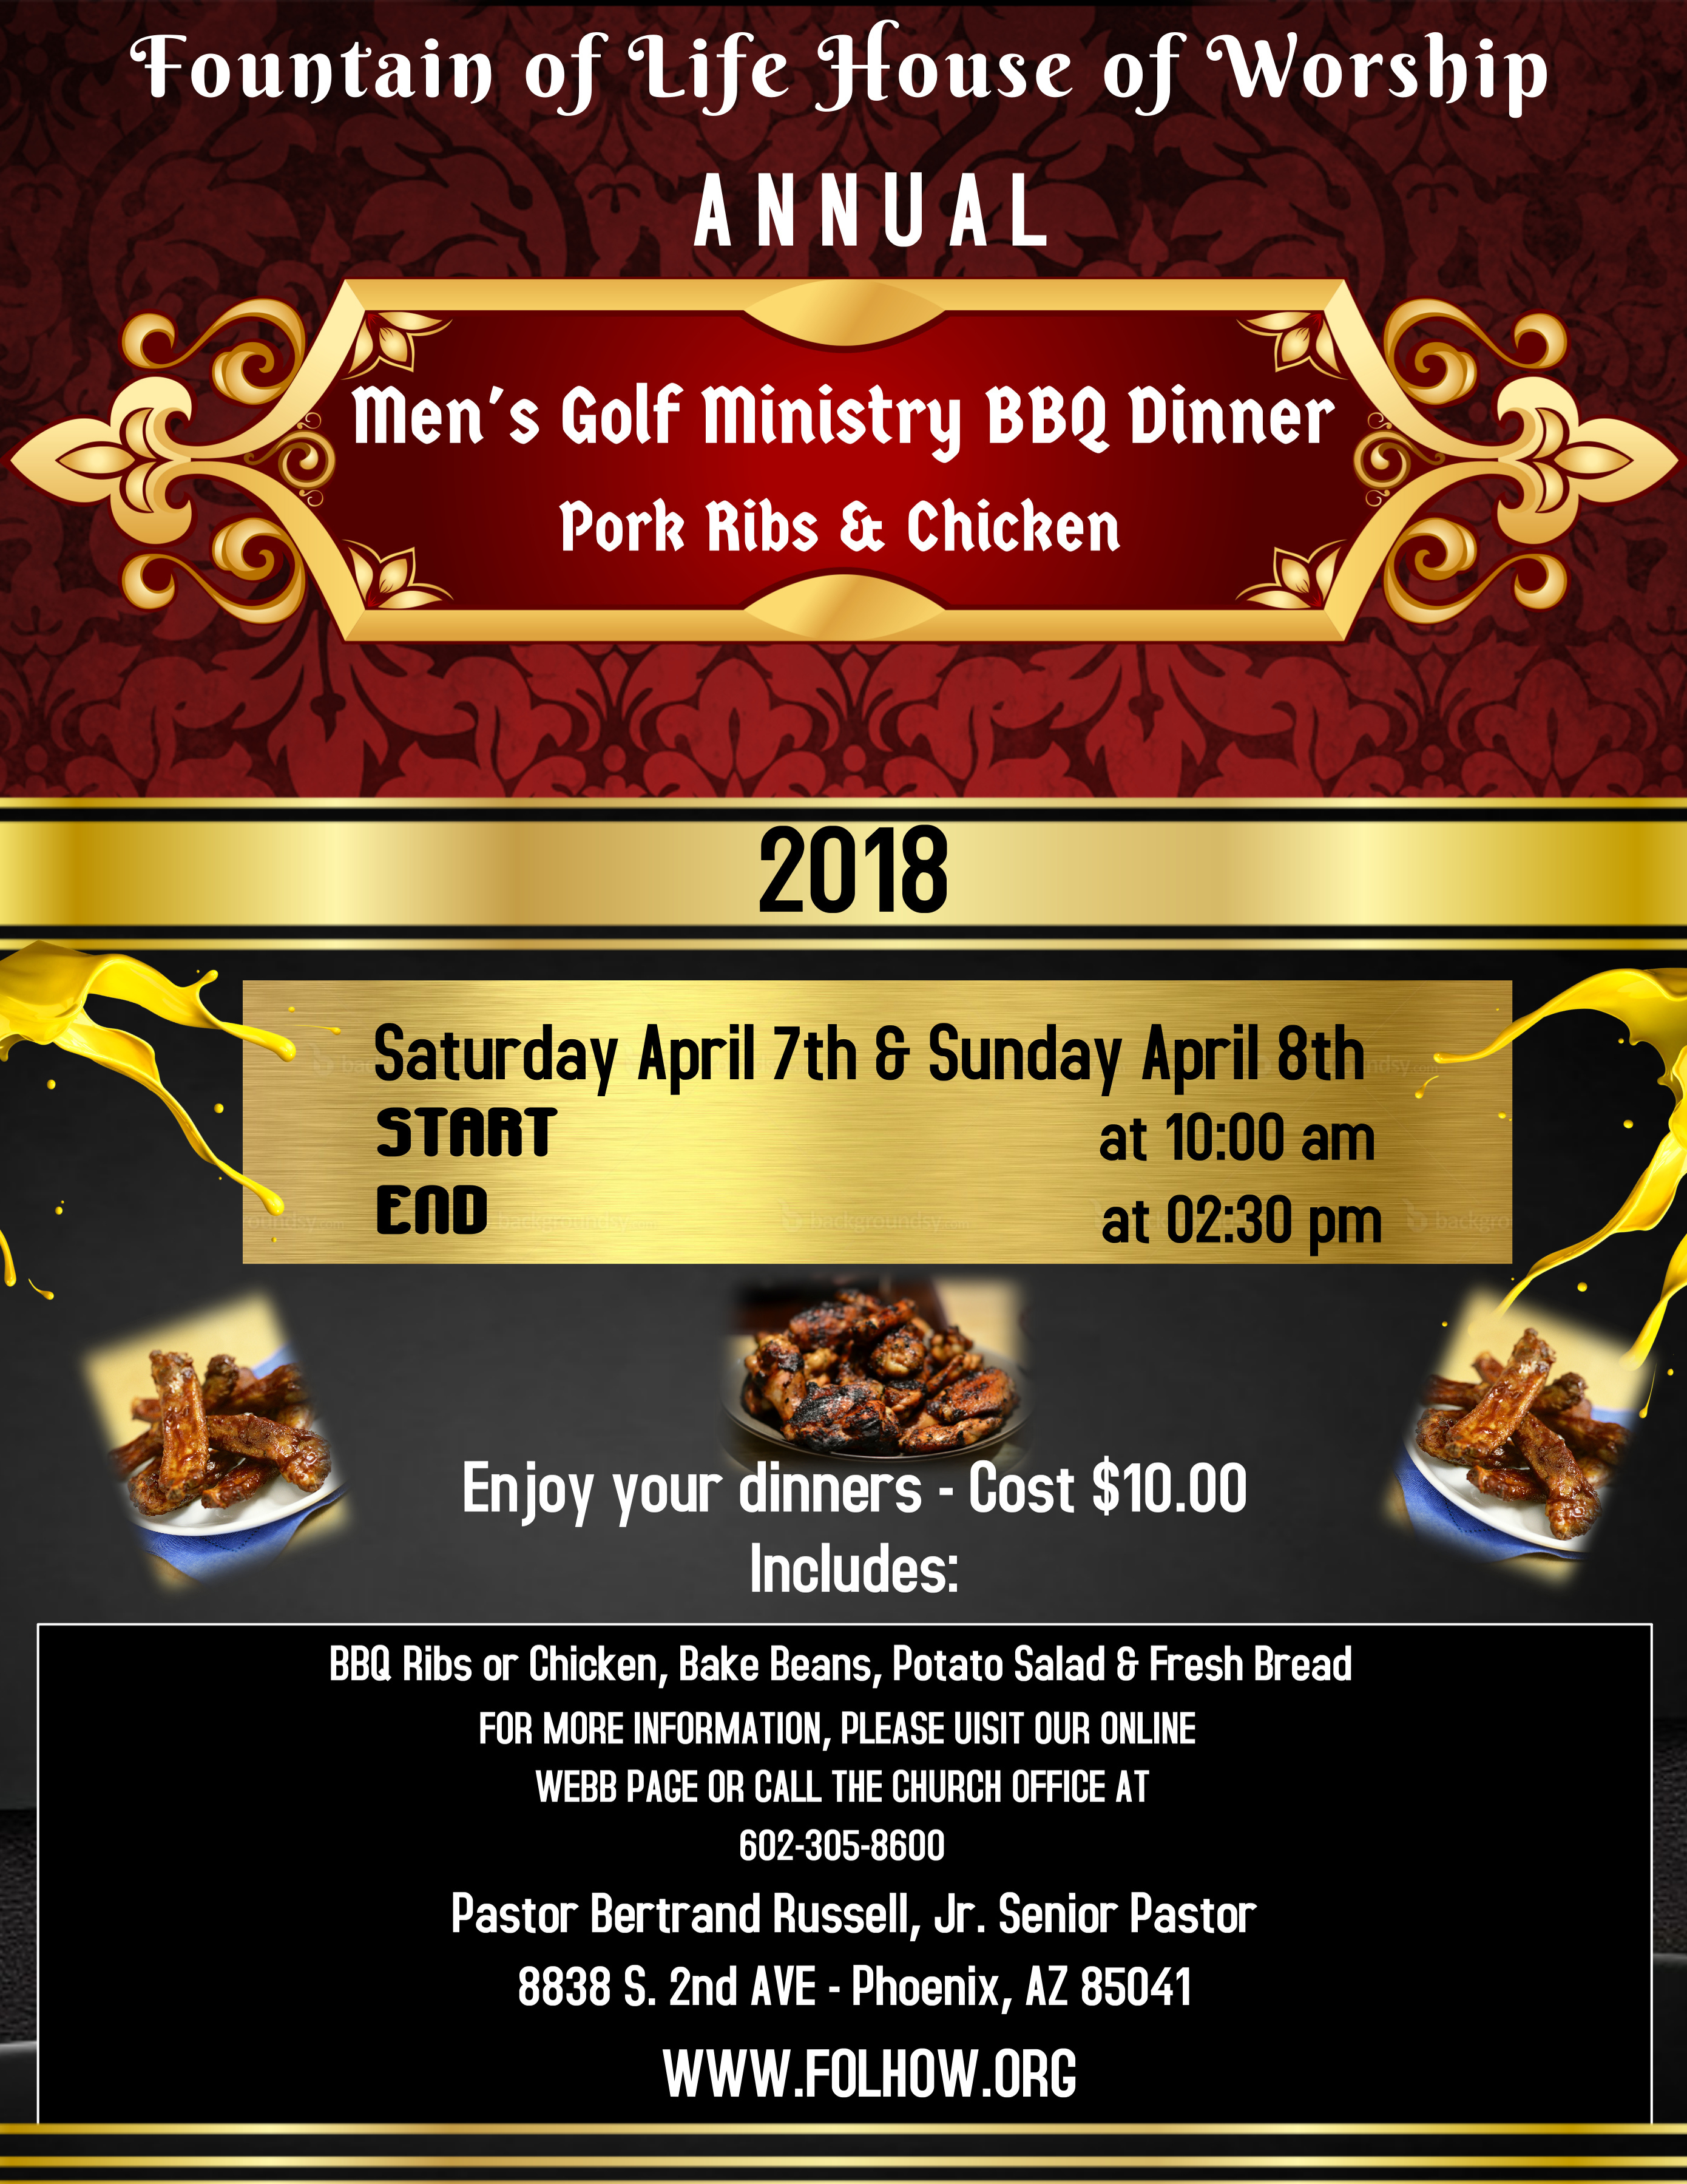 Men's Golf Ministry BBQ Dinner - Apr. 7th & 8th